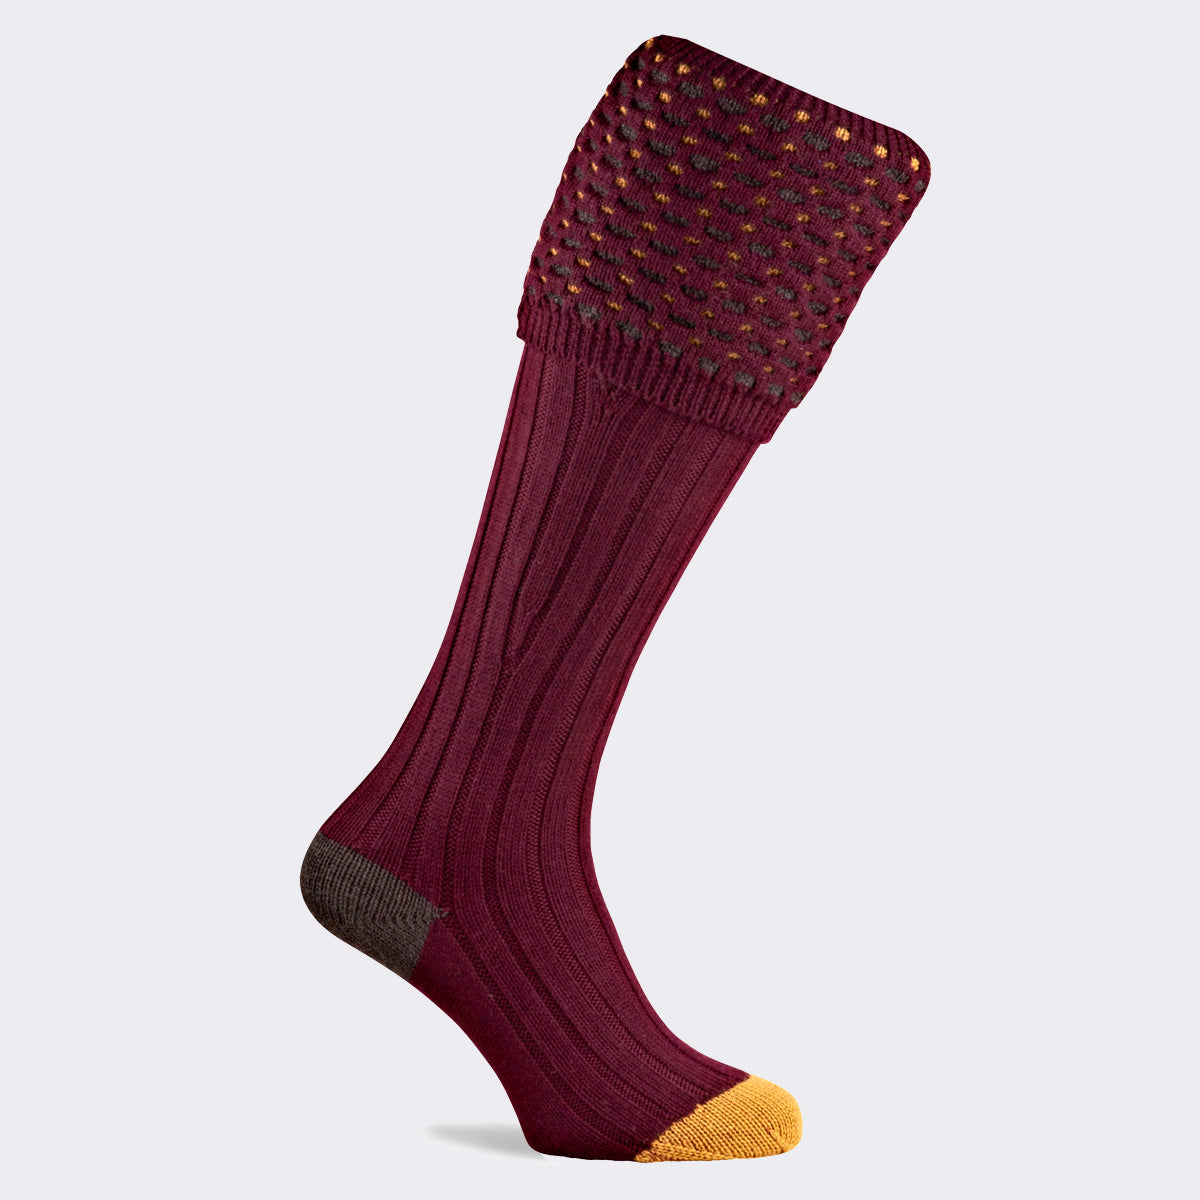 Pennine Ambassador Shooting Sock in Burgundy